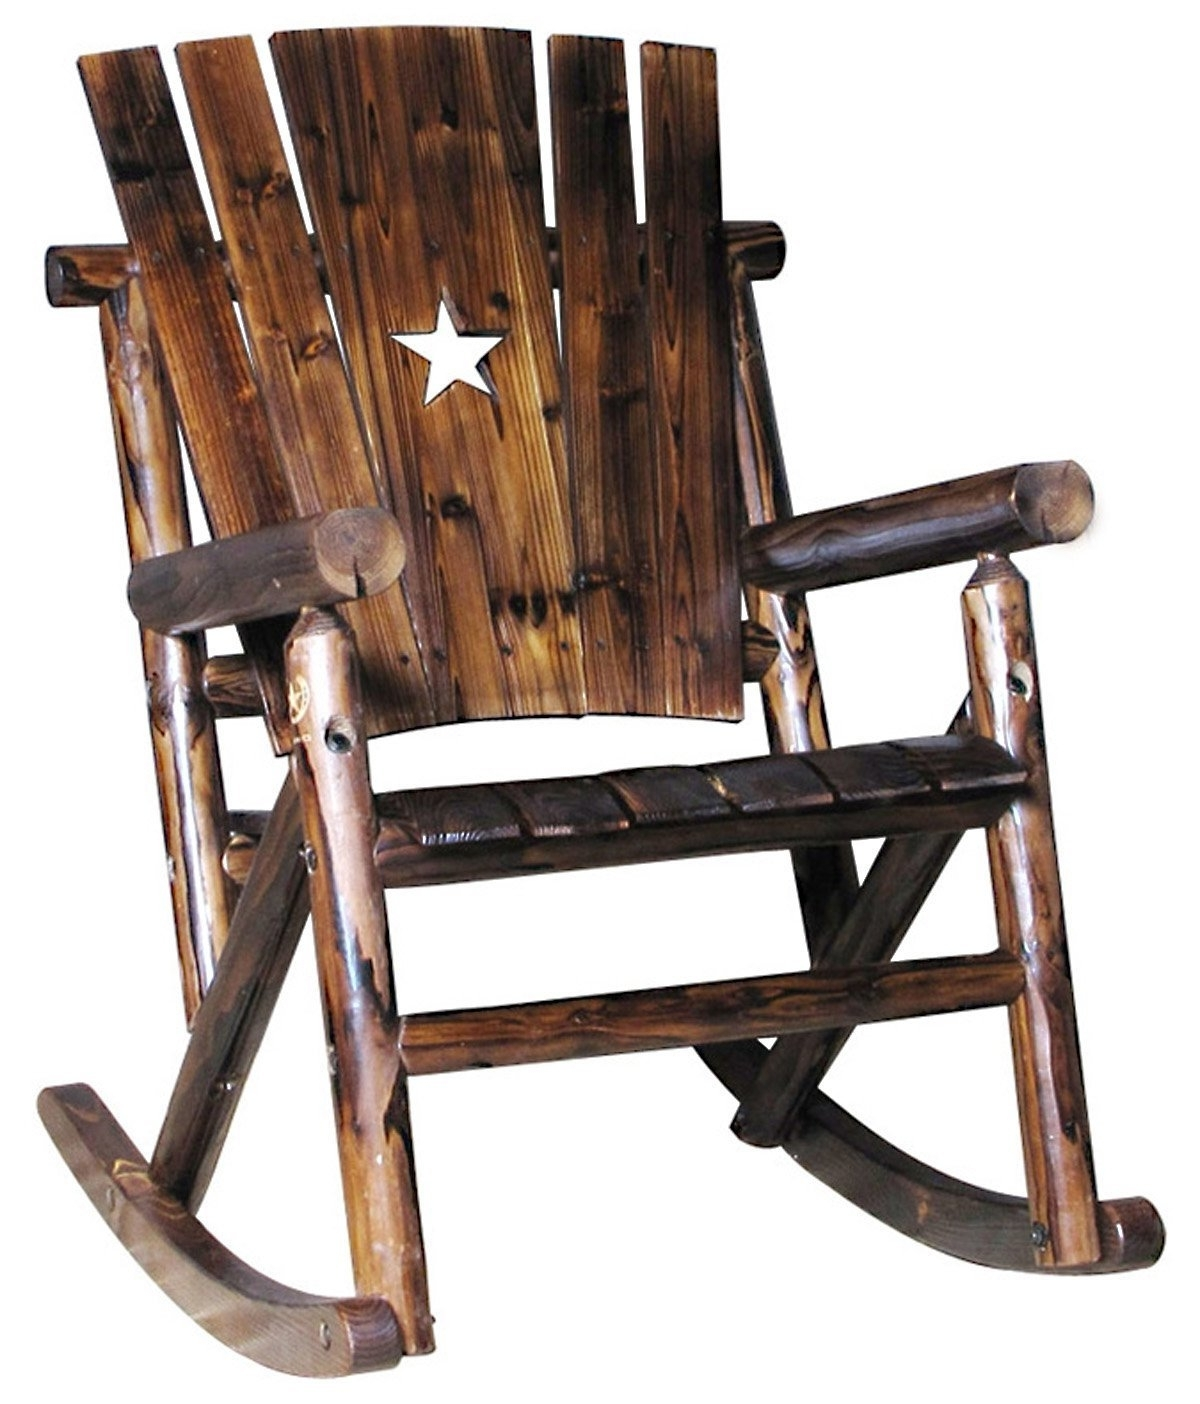 3 Best Rustic Rocking Chairs Available In The Market – Nursery Gliderz Inside 2017 Char Log Patio Rocking Chairs With Star (View 1 of 15)